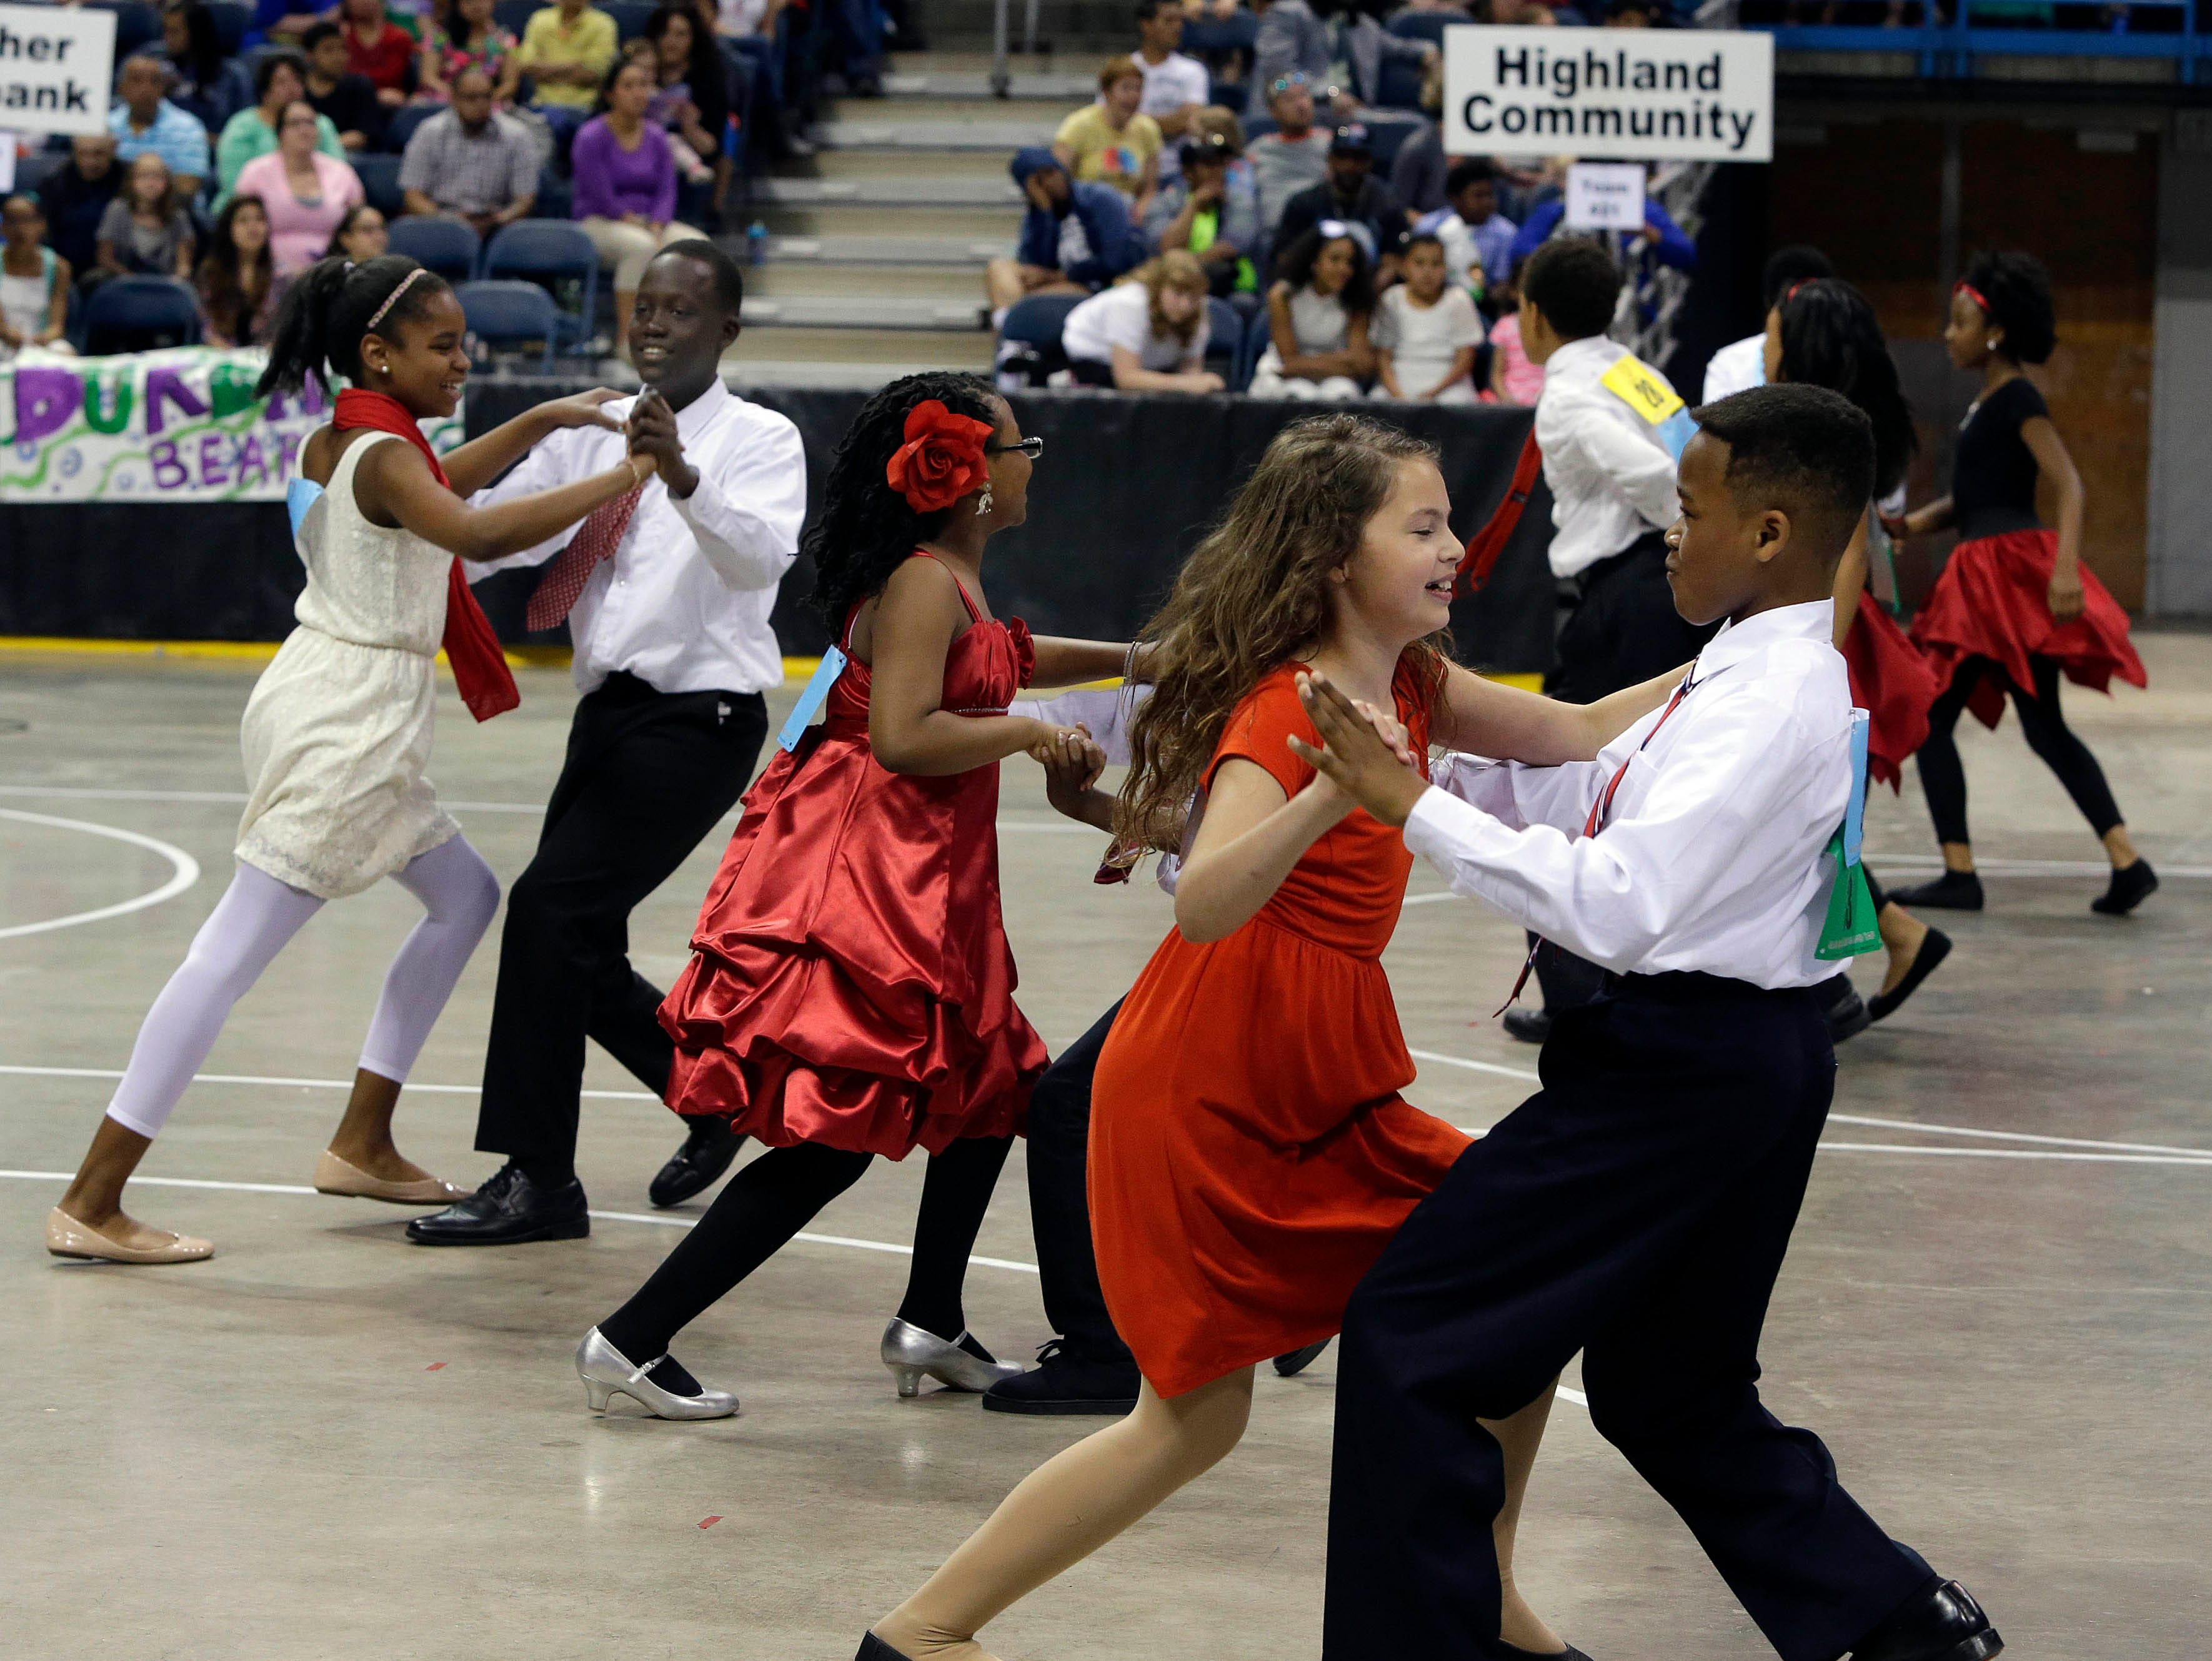 2015: From left couples Nigirea Brown and Khadim Dime; Kada King (bow) and Robert Ihoden; and Sophia Seymour and Cliffton Kincaid, all 5th graders at French Immersion School, perform and compete in the annual Mad Hot Ballroom and Tap competition at the Bradley Center.